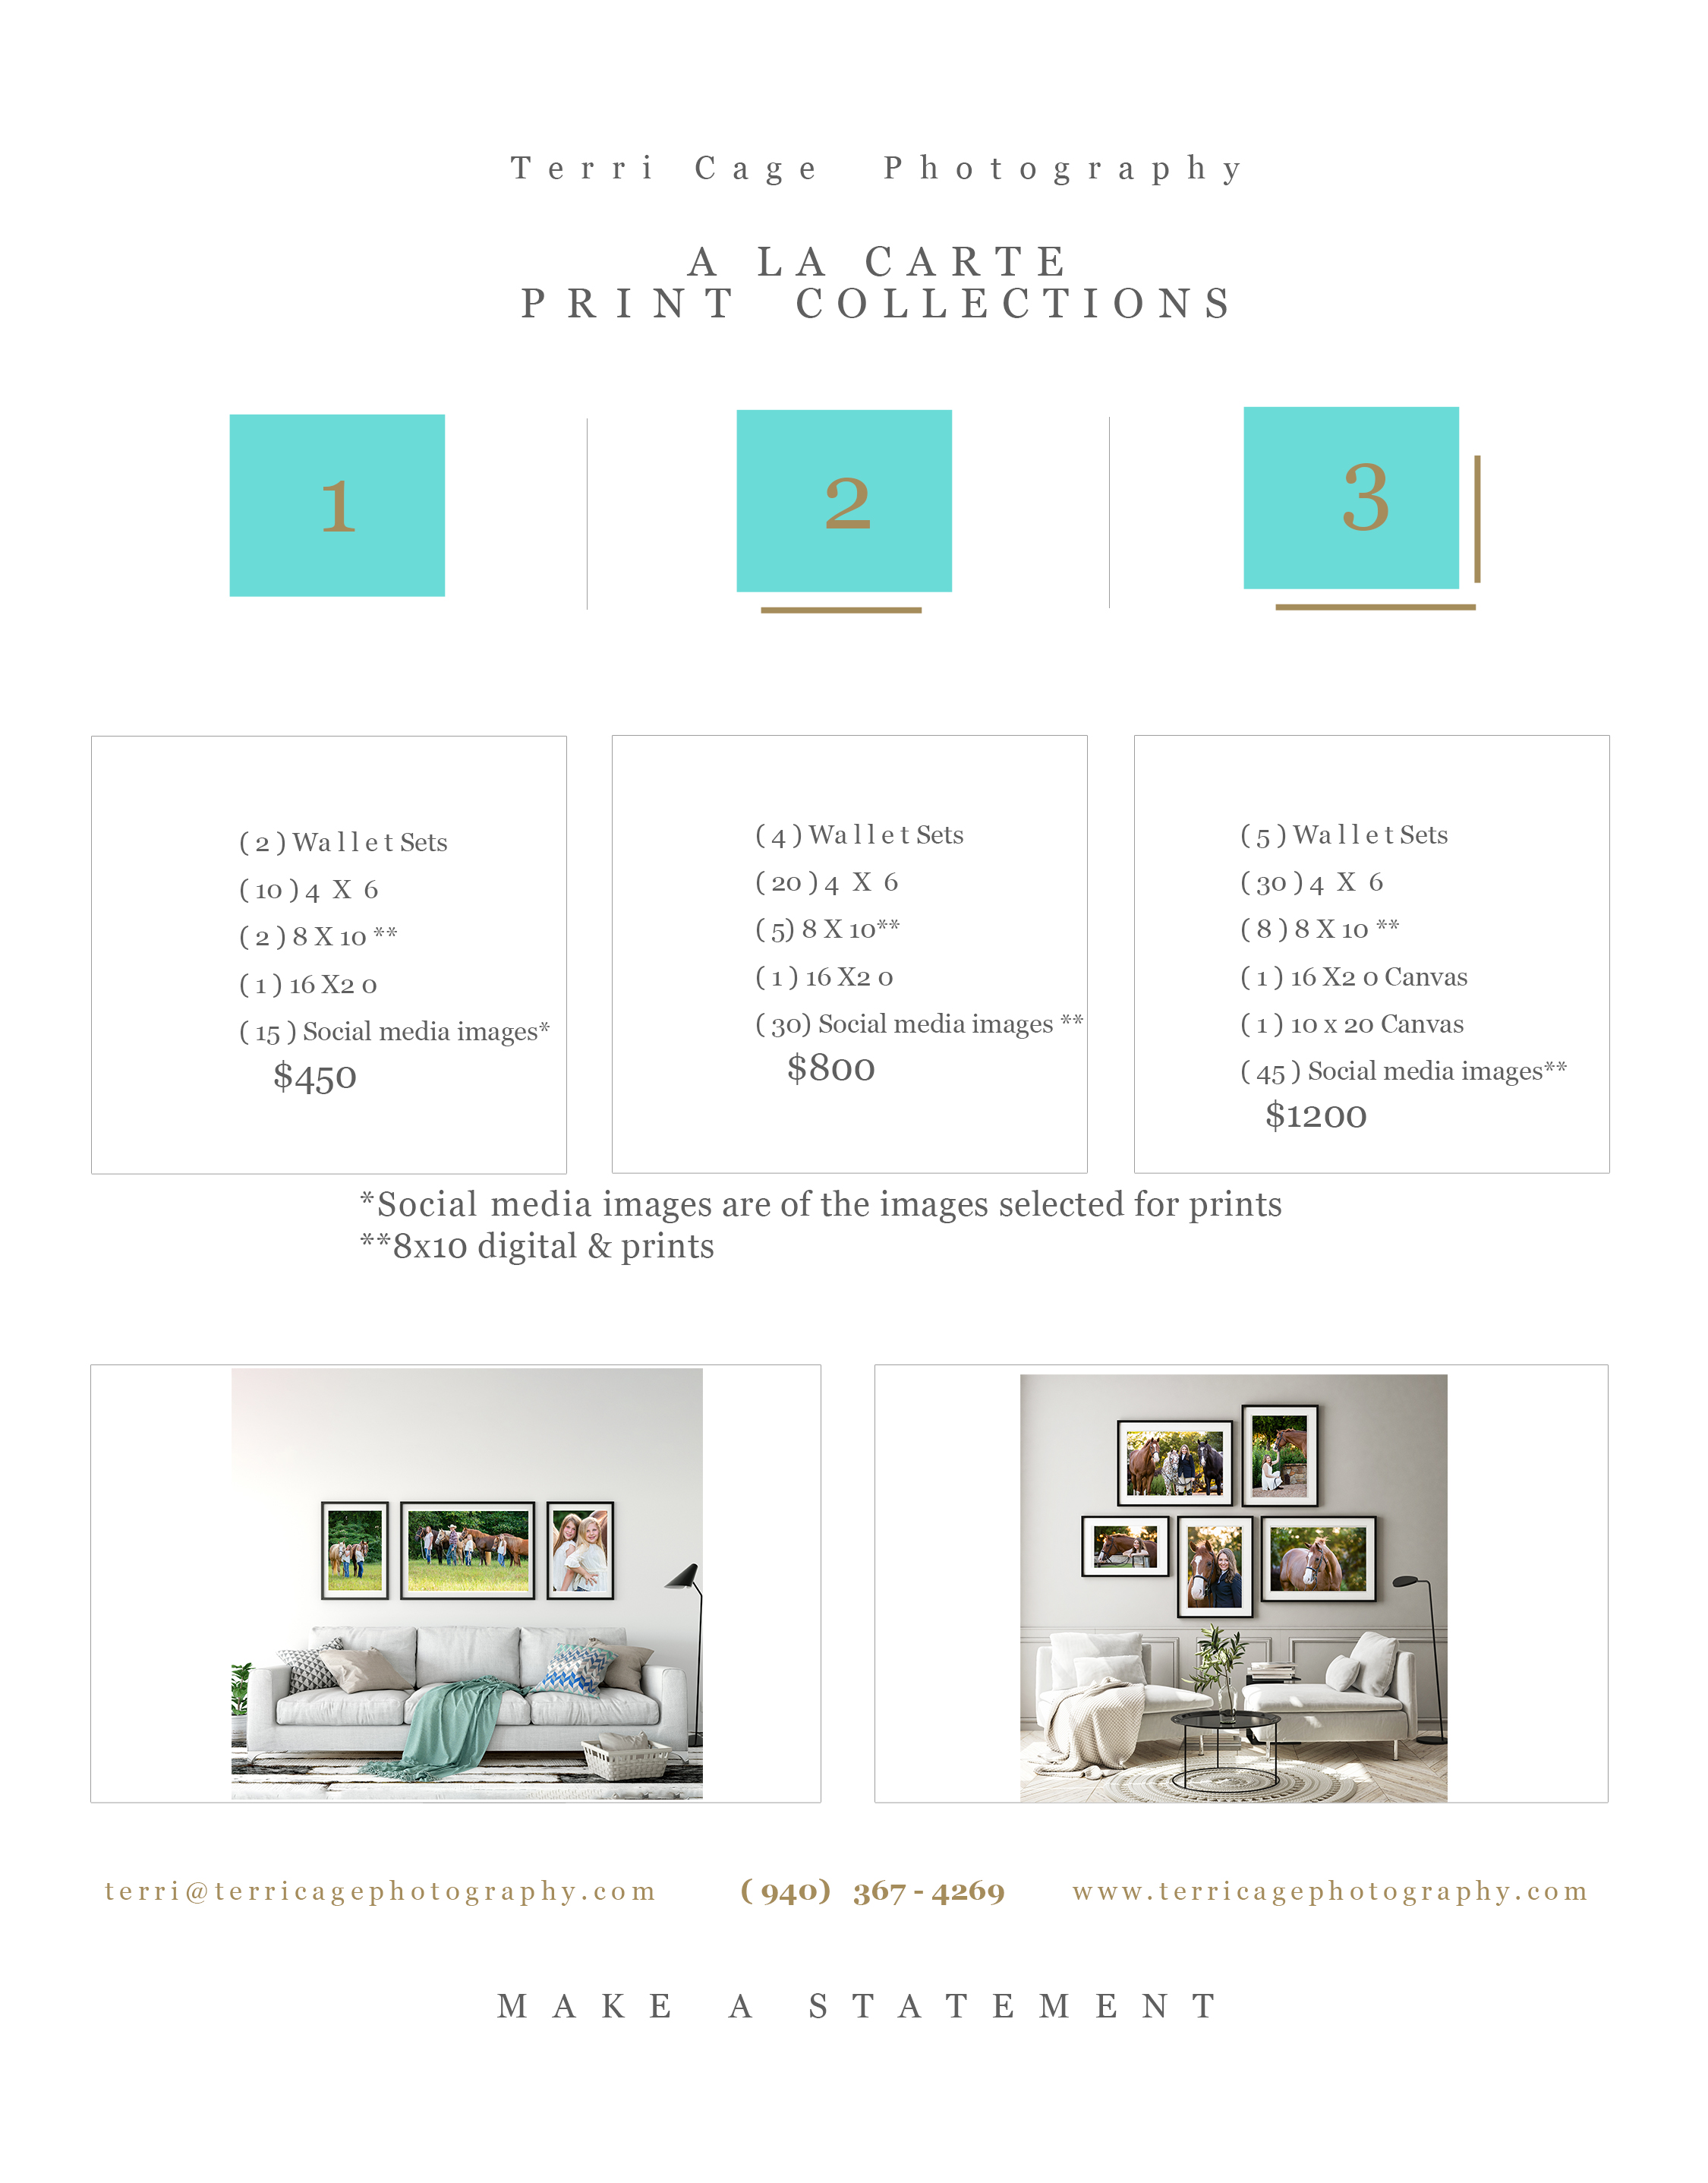 ala carte packages print collections.jpg